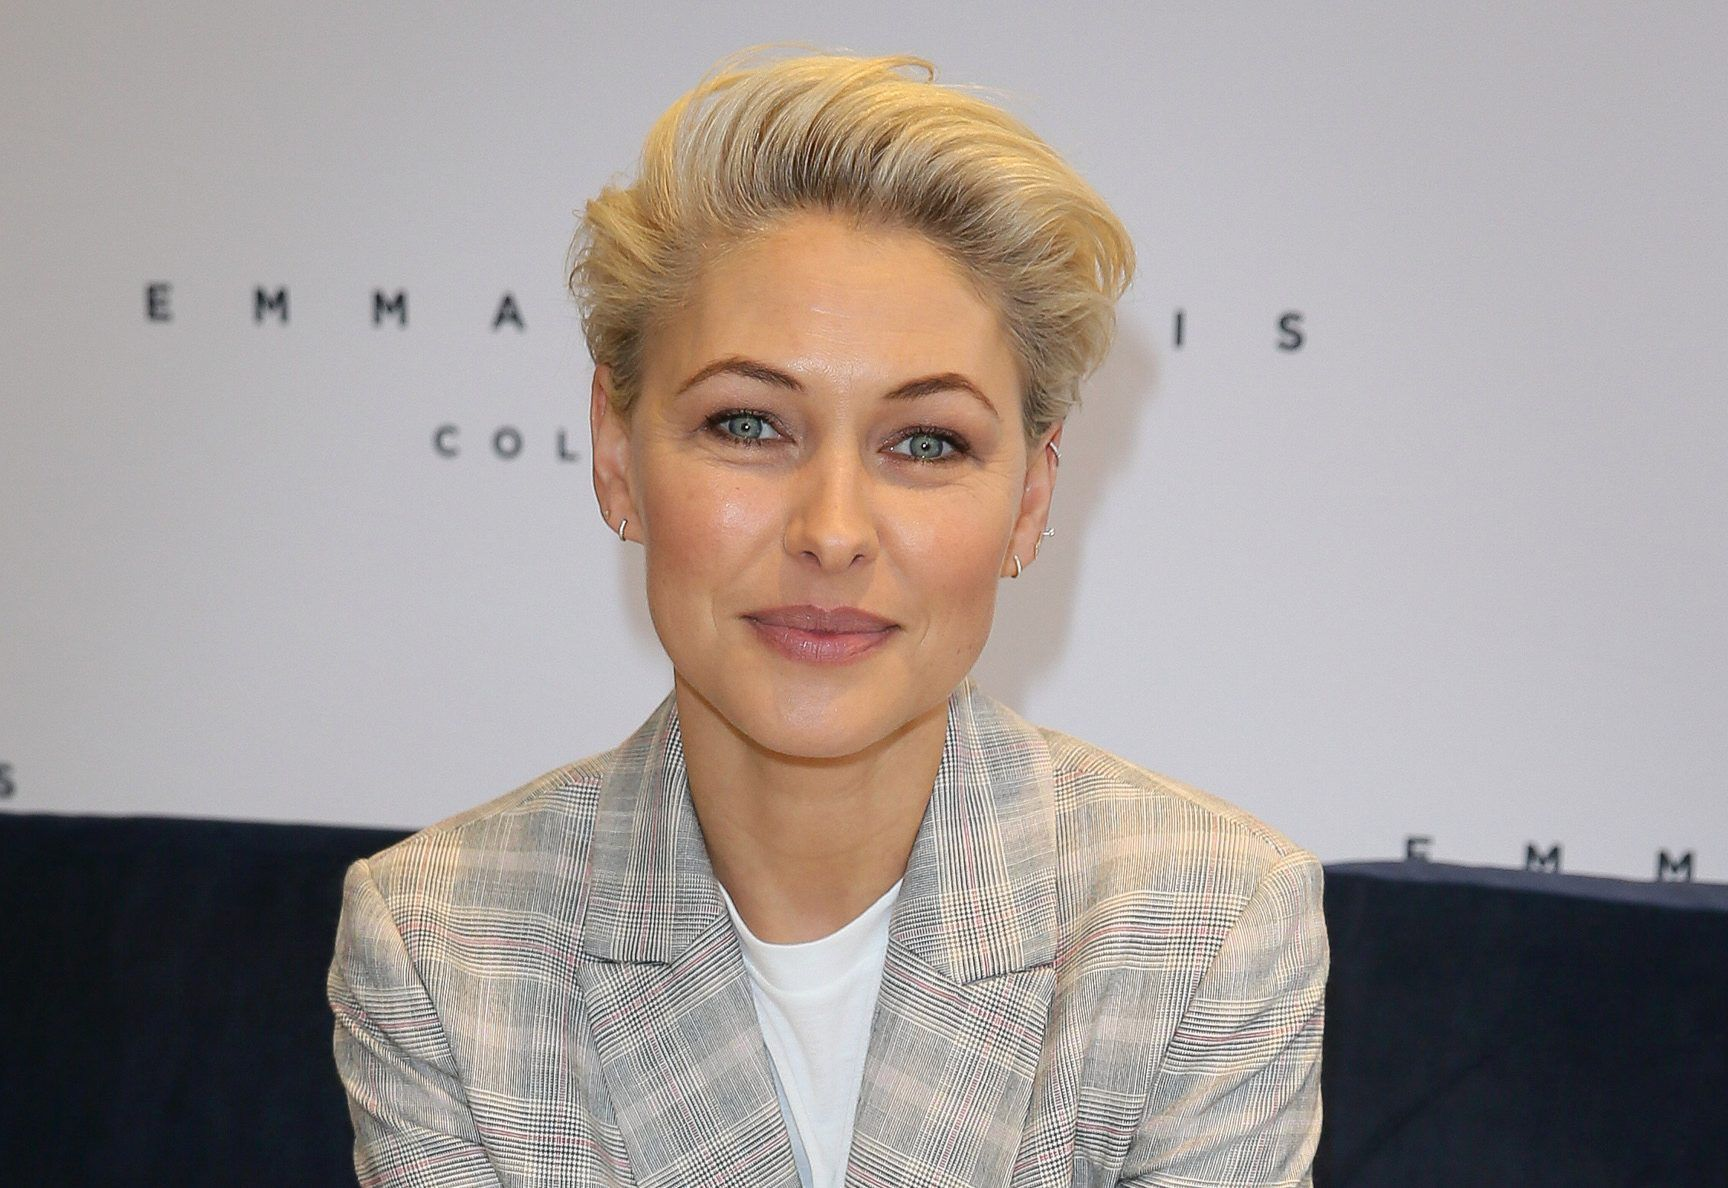 Emma Willis hottest female anchors in the world